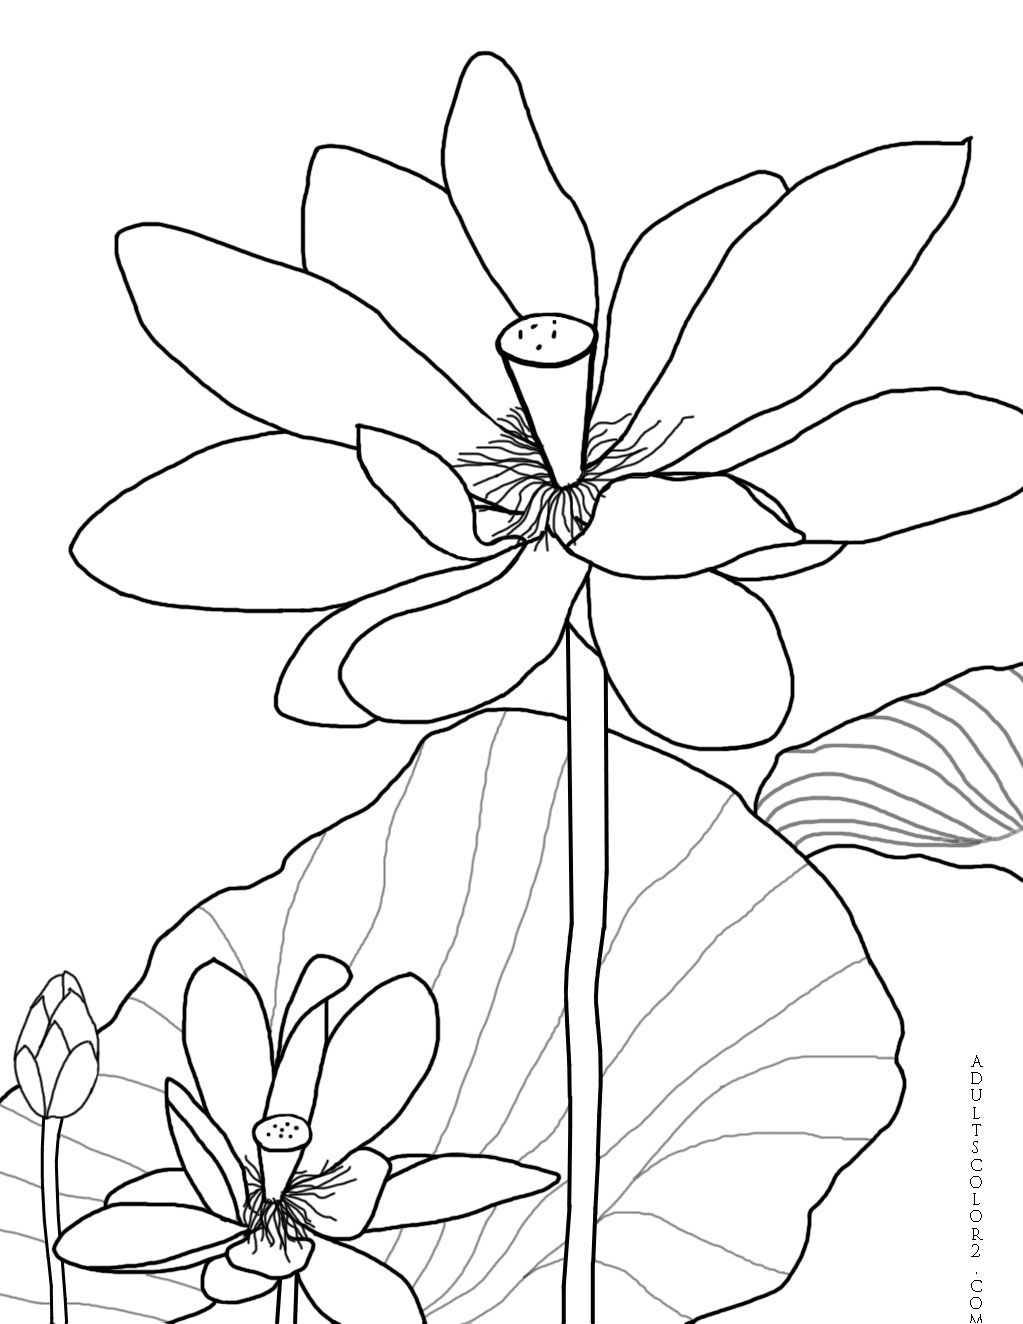 Coloring pages of flower buds - Fully Opened Blossoms With Bud